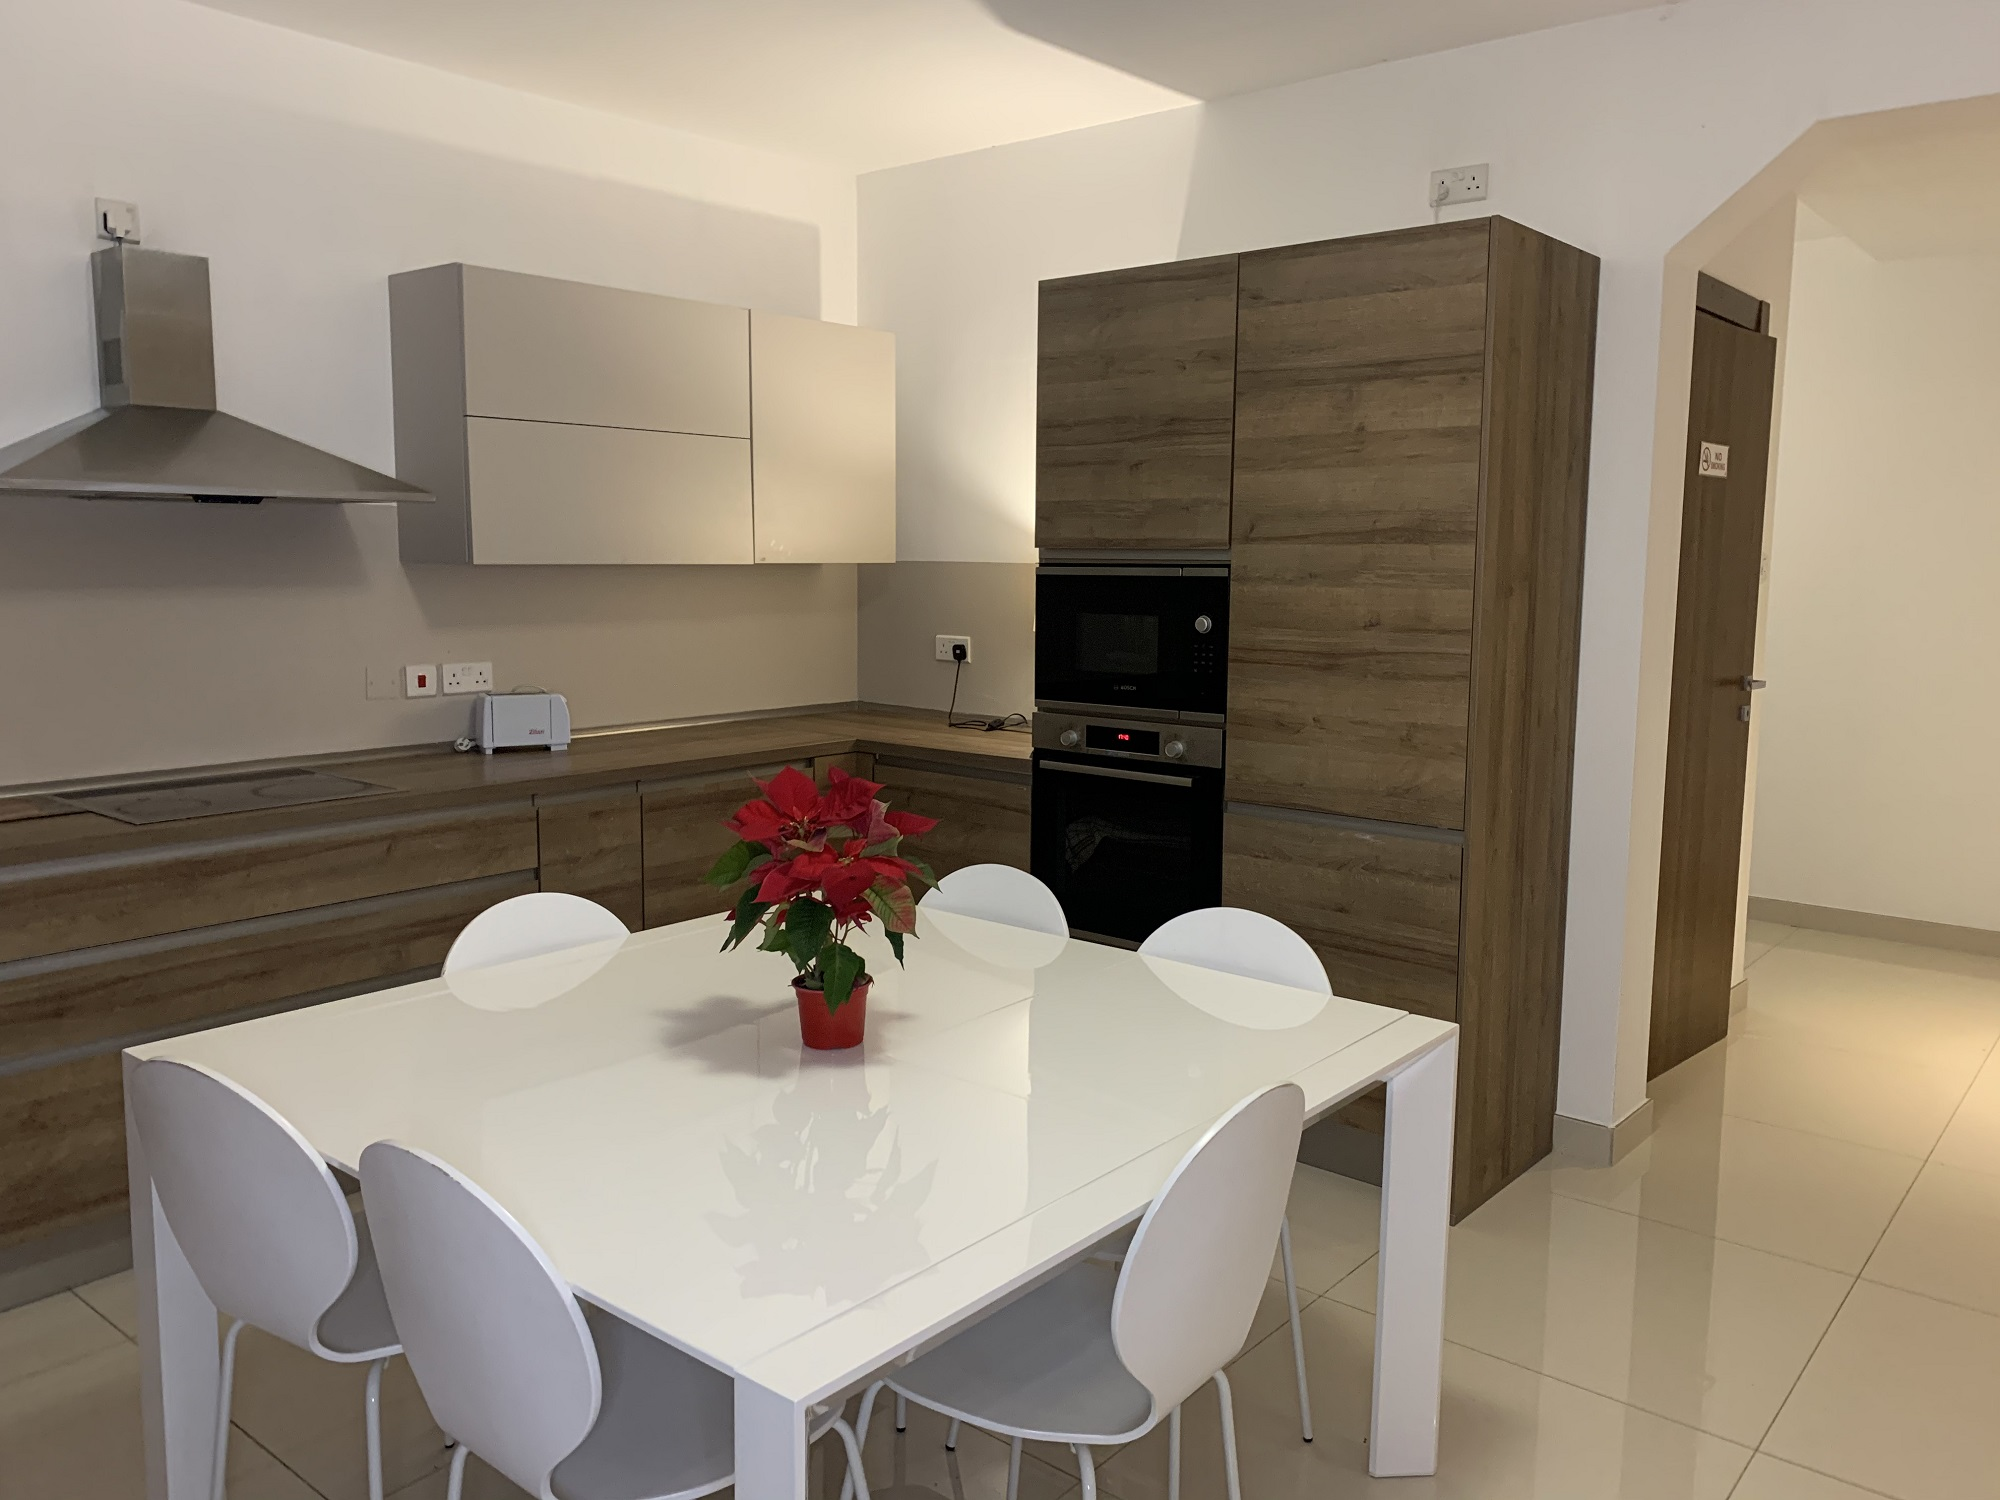 Kitchen and dining area in the student residences